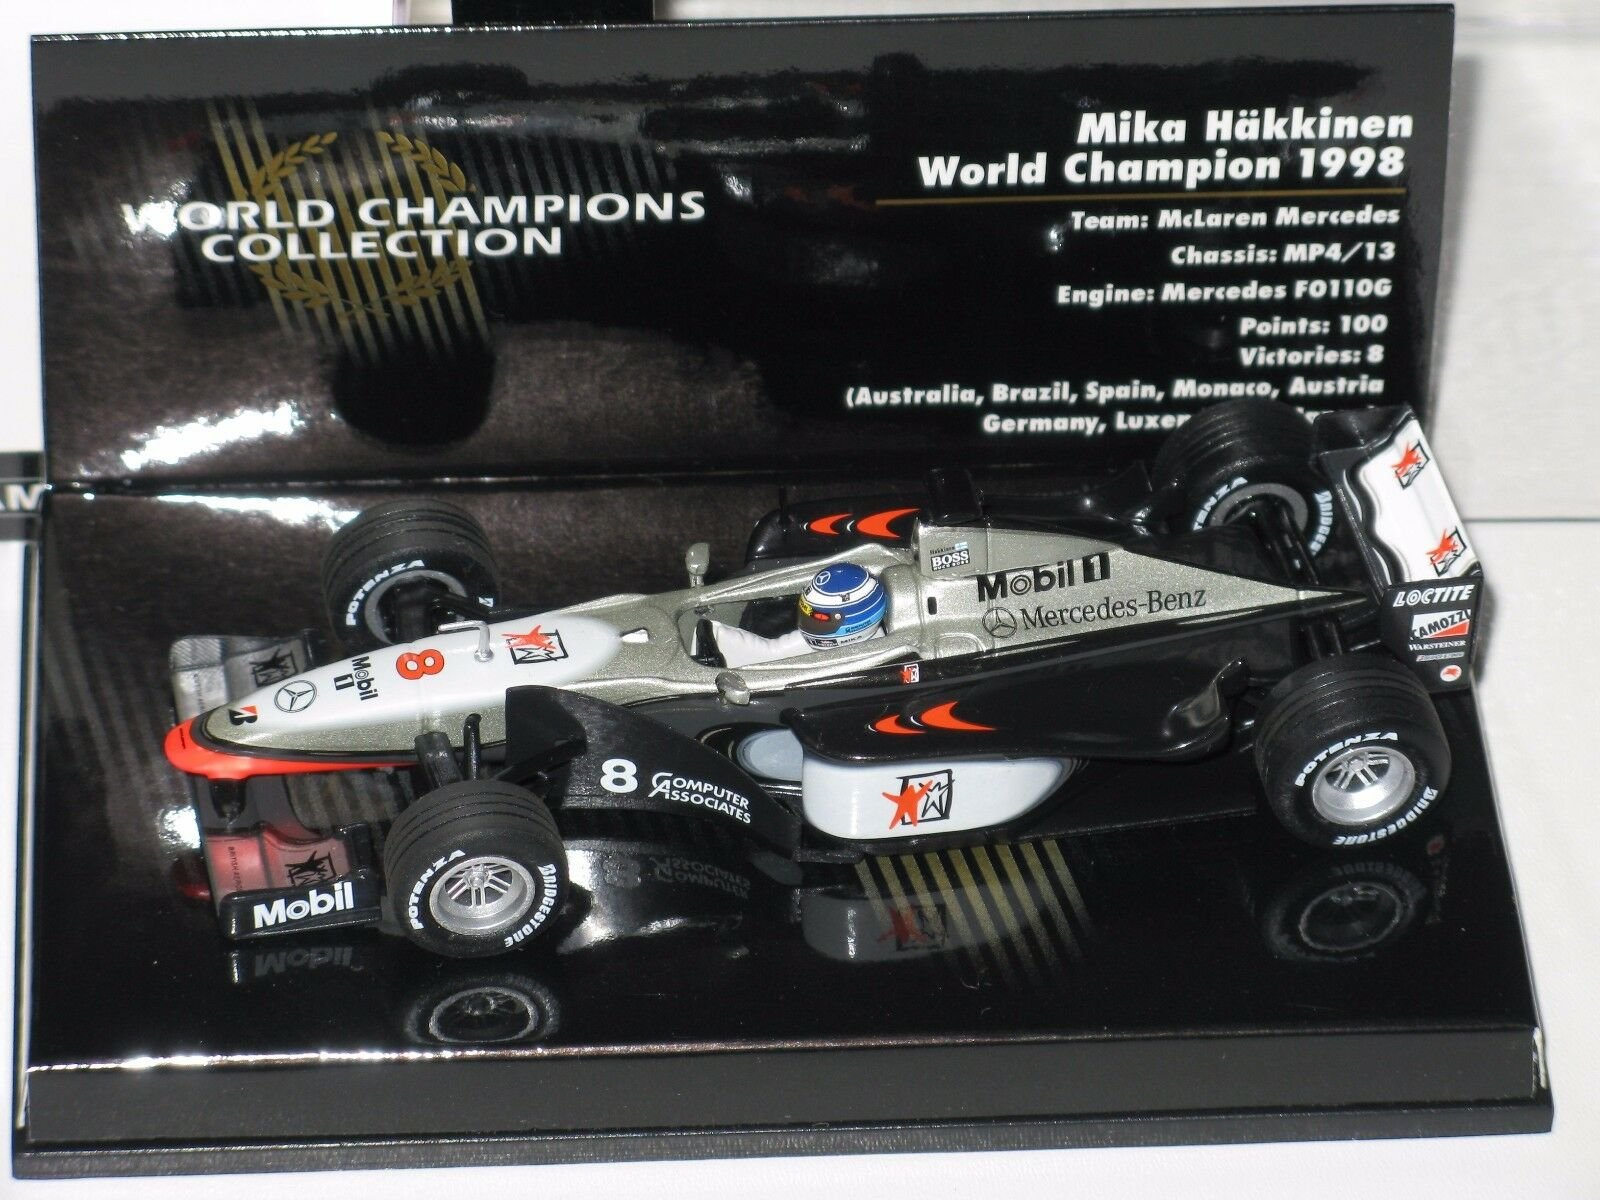 Mclaren MP4 13  WC.1998 - Hakkinen - F1 1 43 Minichamps  No Spark